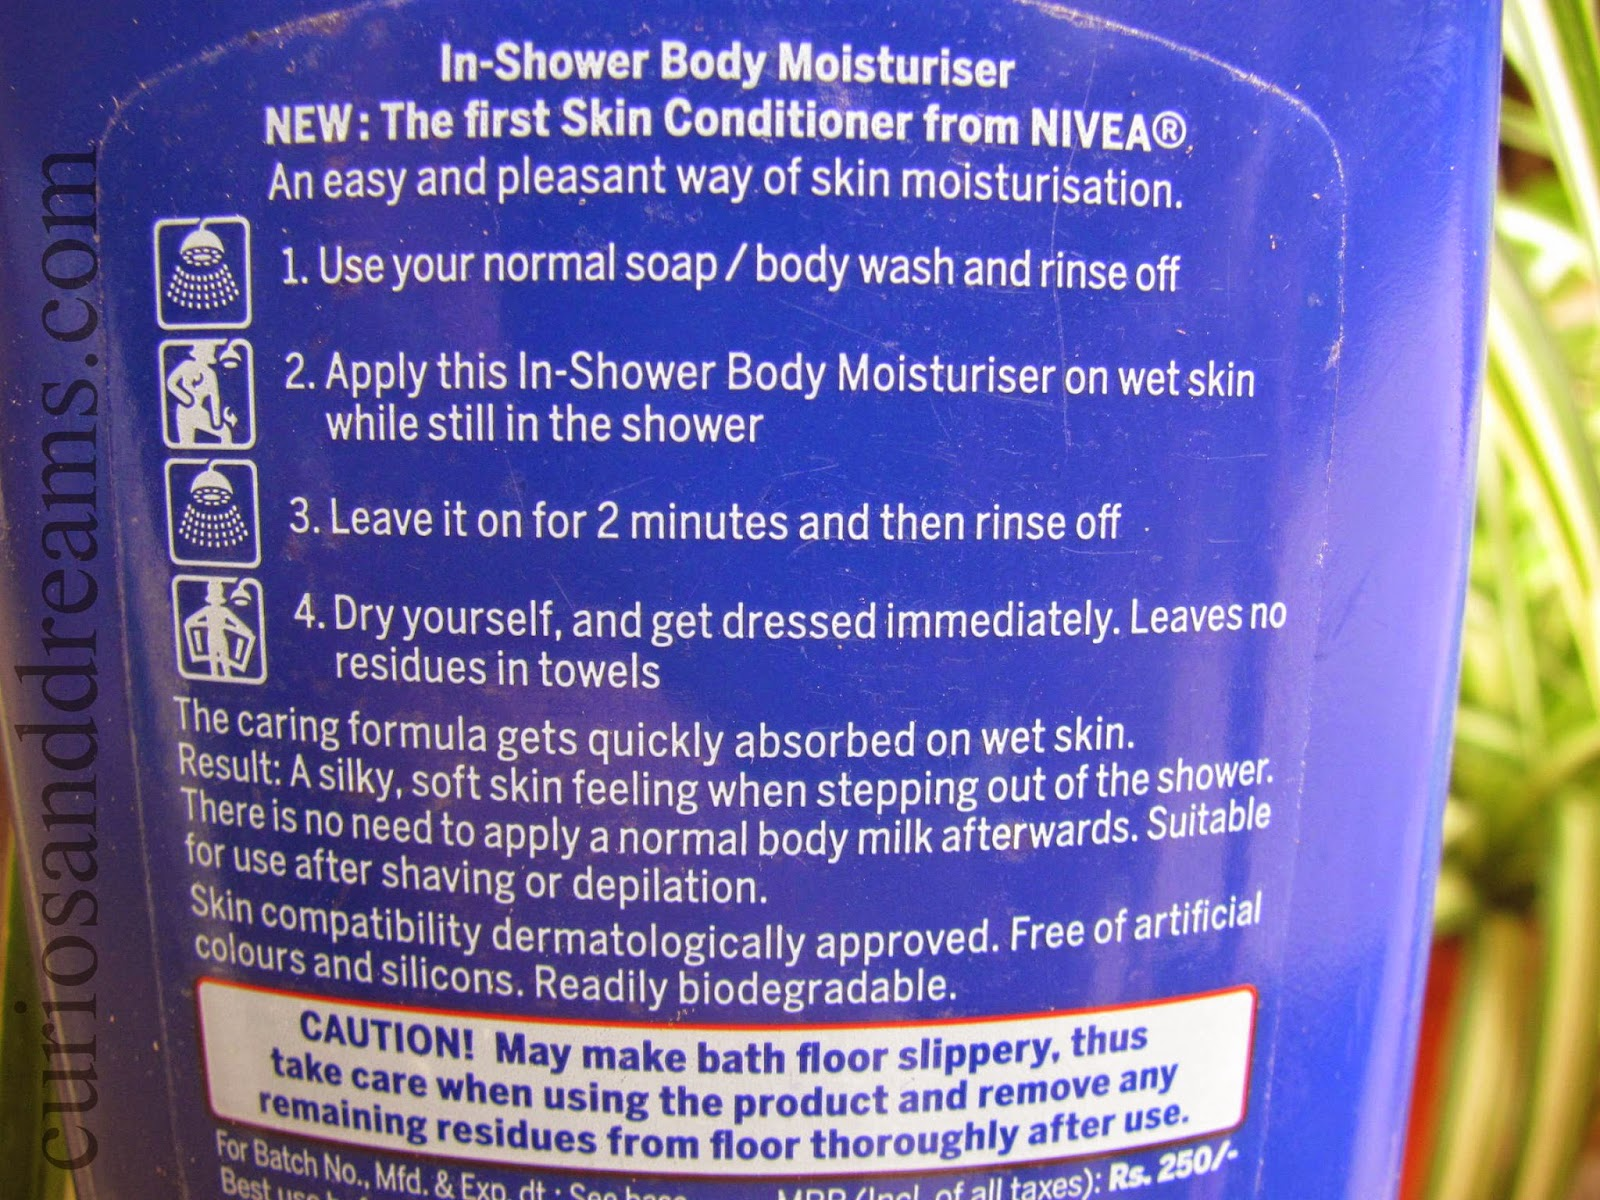 Nivea In-Shower Body Moisturiser Review